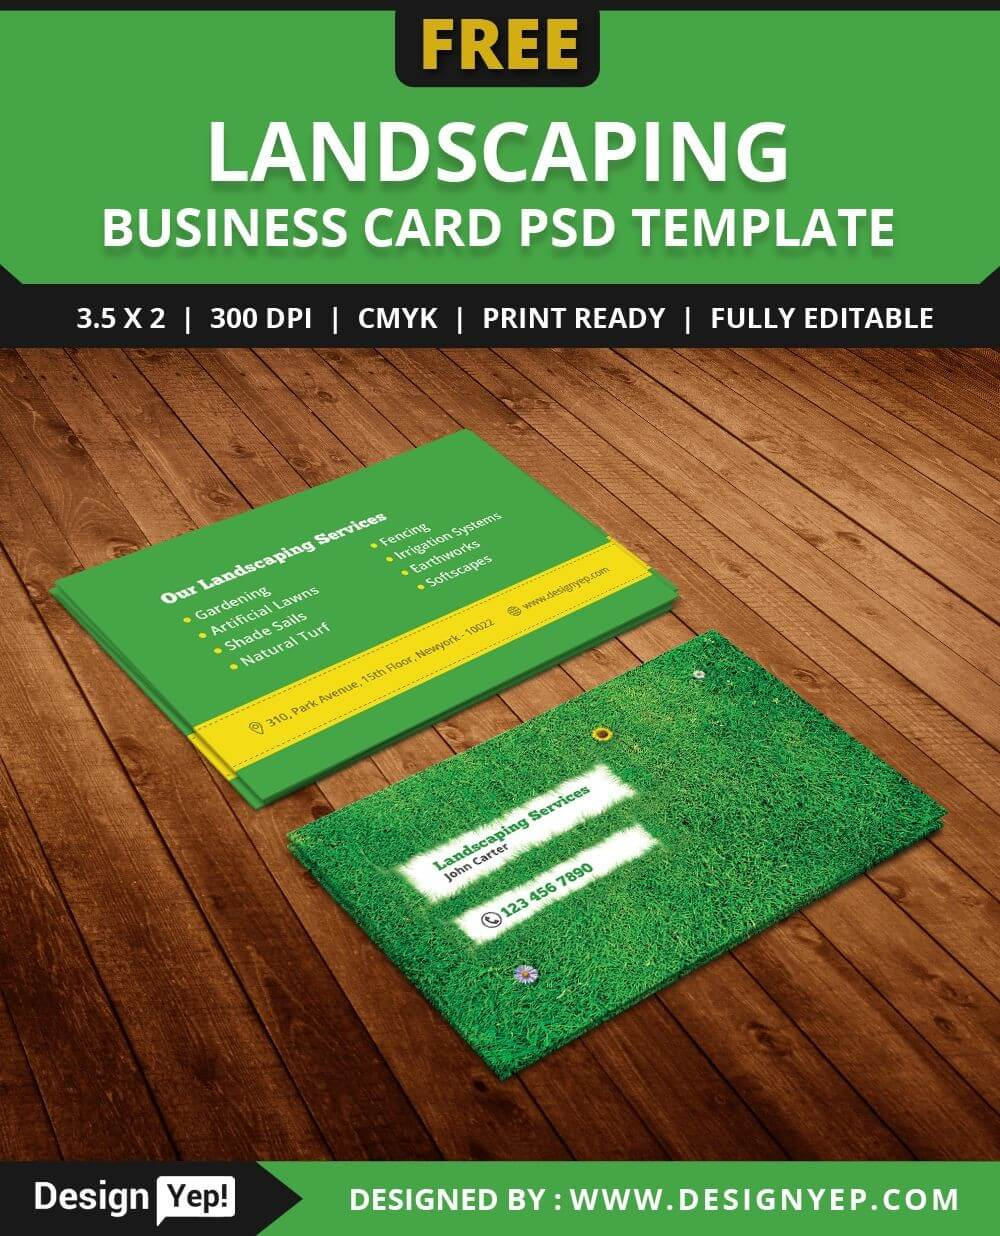 Free Landscaping Business Card Template Psd | Free Business Regarding Lawn Care Business Cards Templates Free